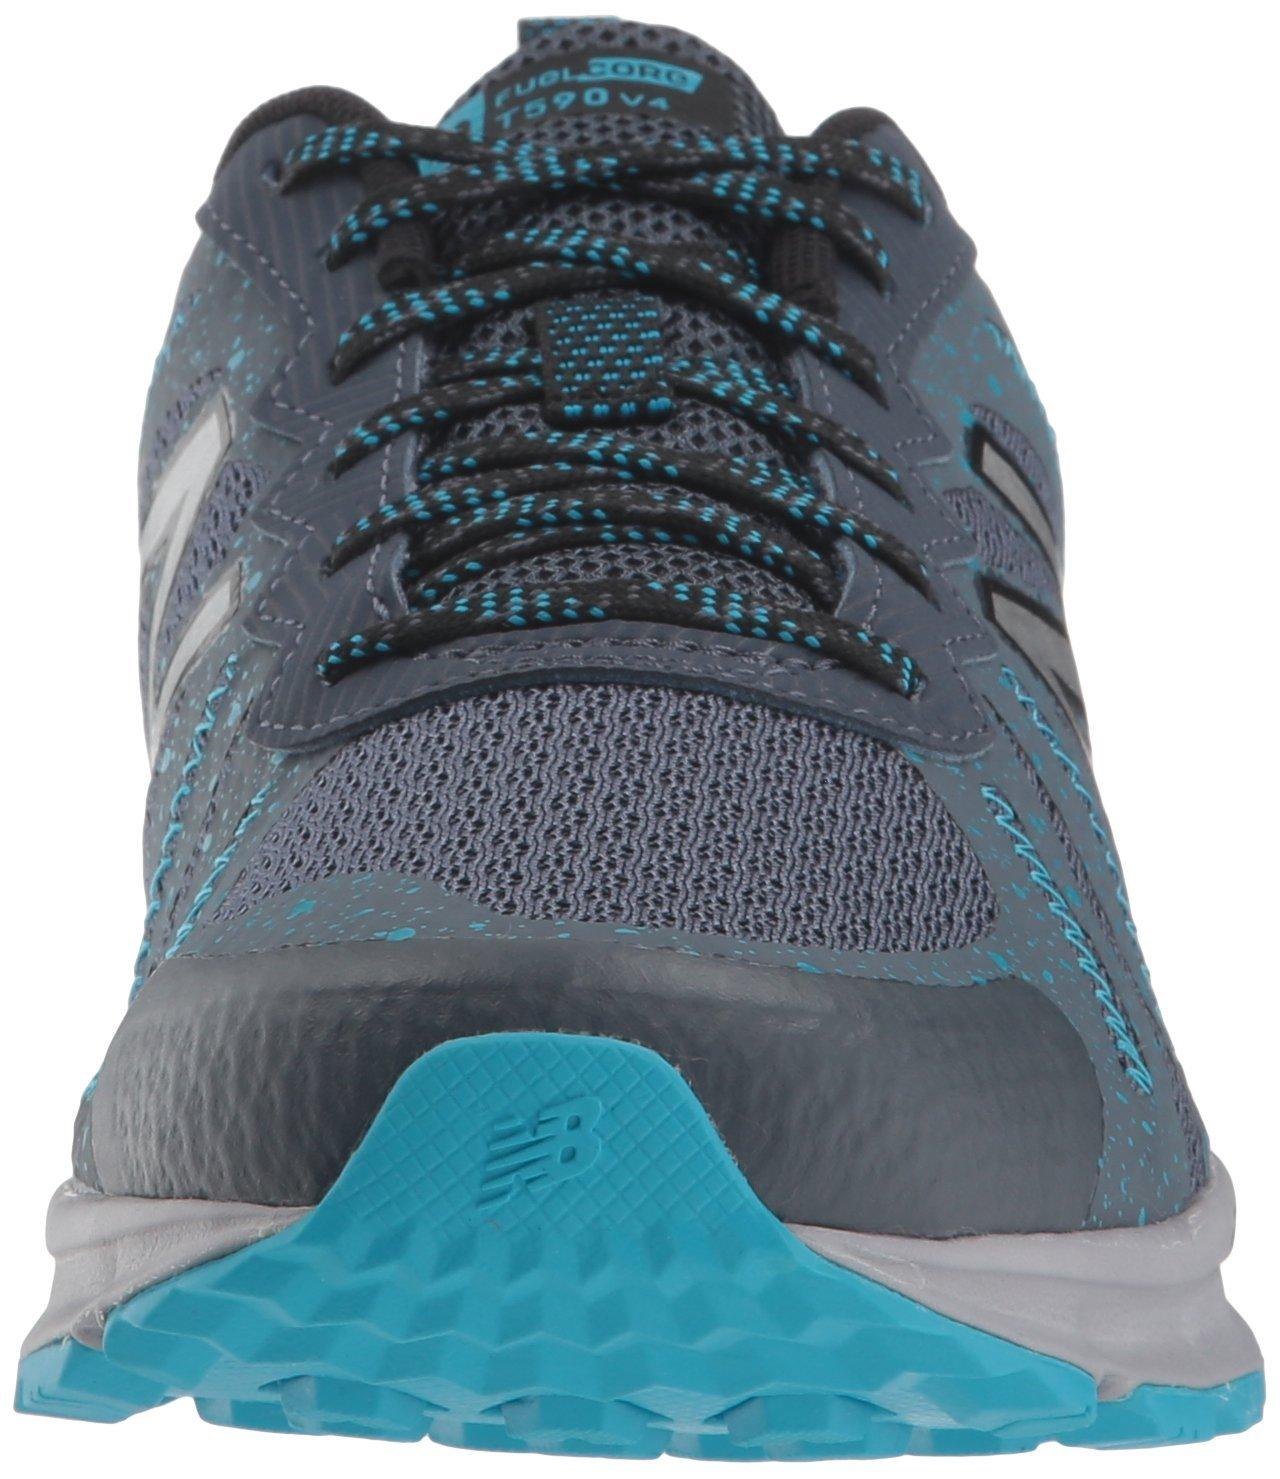 New Balance Women's 590v4 FuelCore Trail Running Shoe Dark Grey 6 D US by New Balance (Image #4)